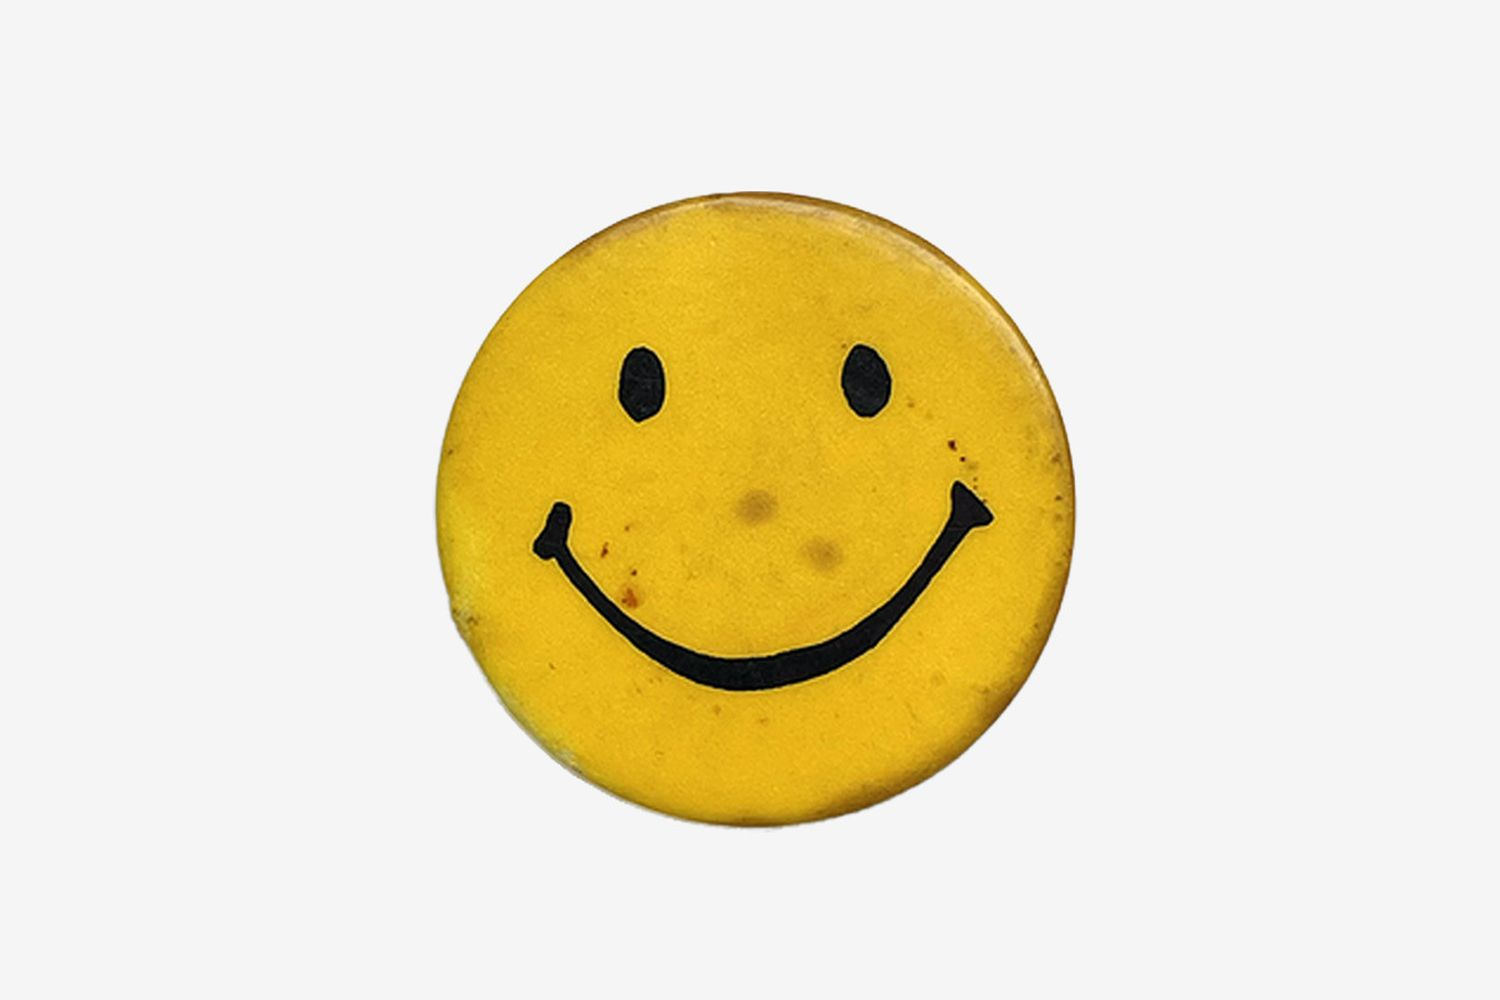 1970s Smiley Face Pin Badge